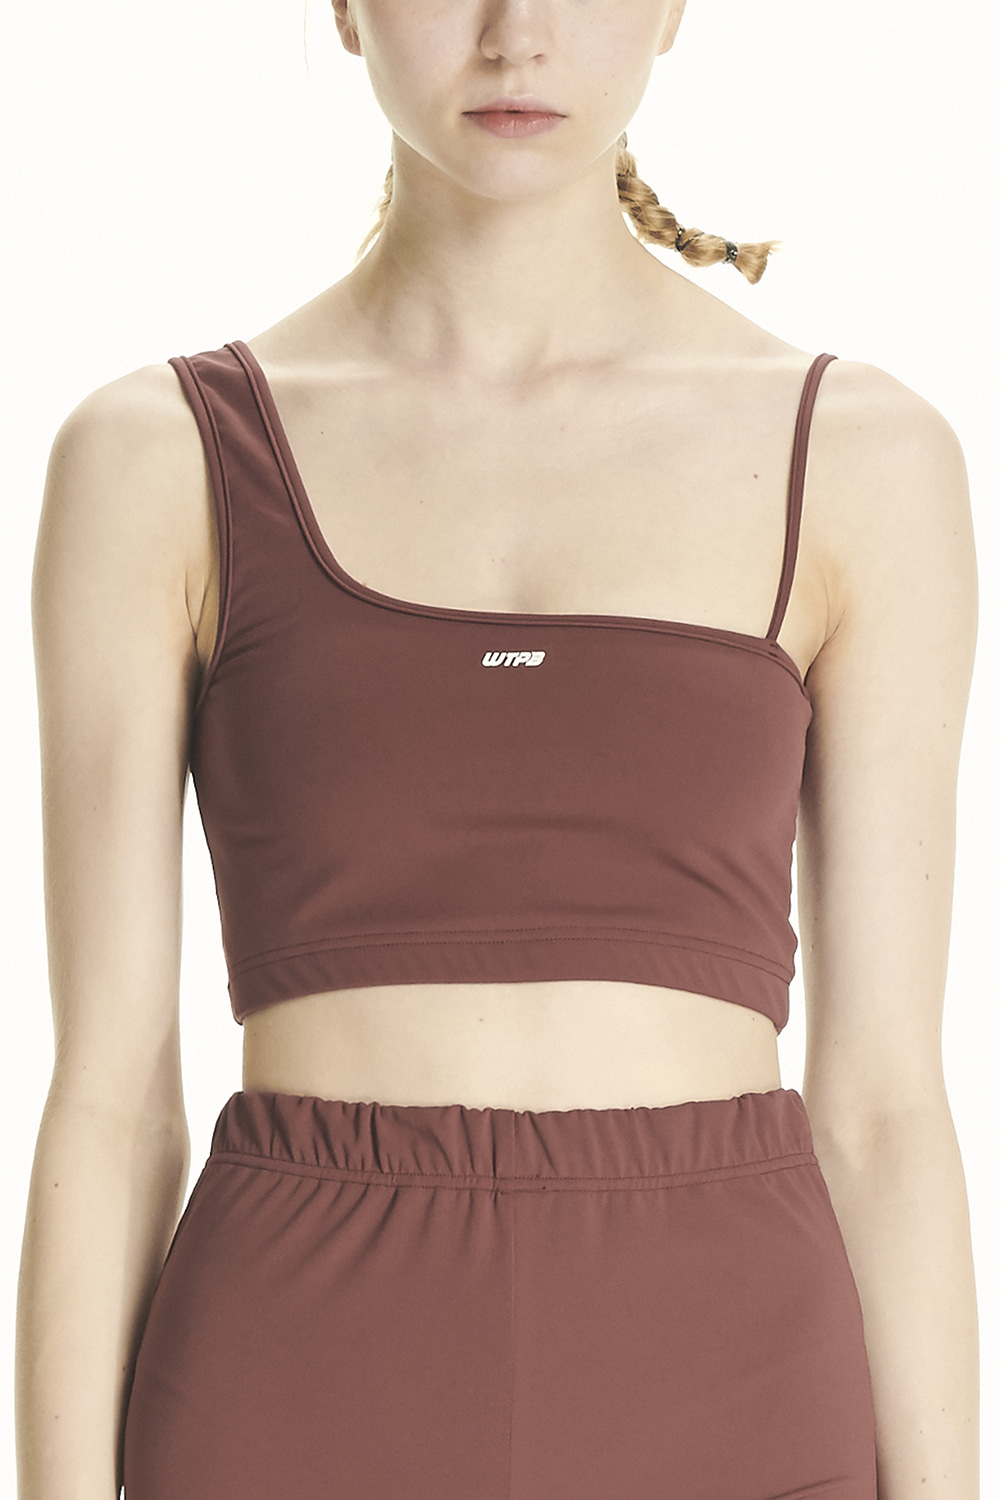 PS21 WTPB WINE BRA TOP